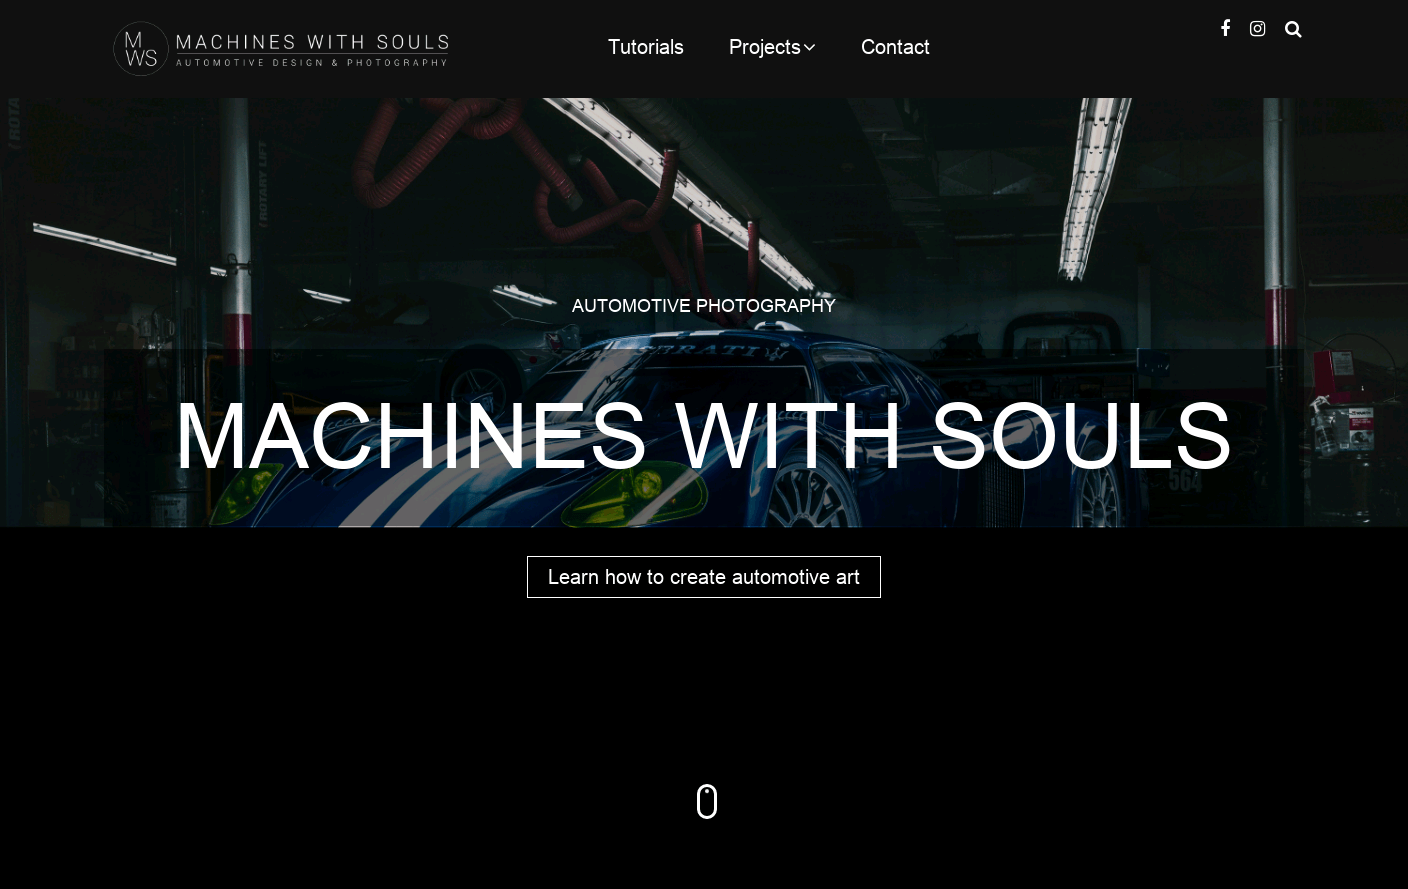 Machines With Souls